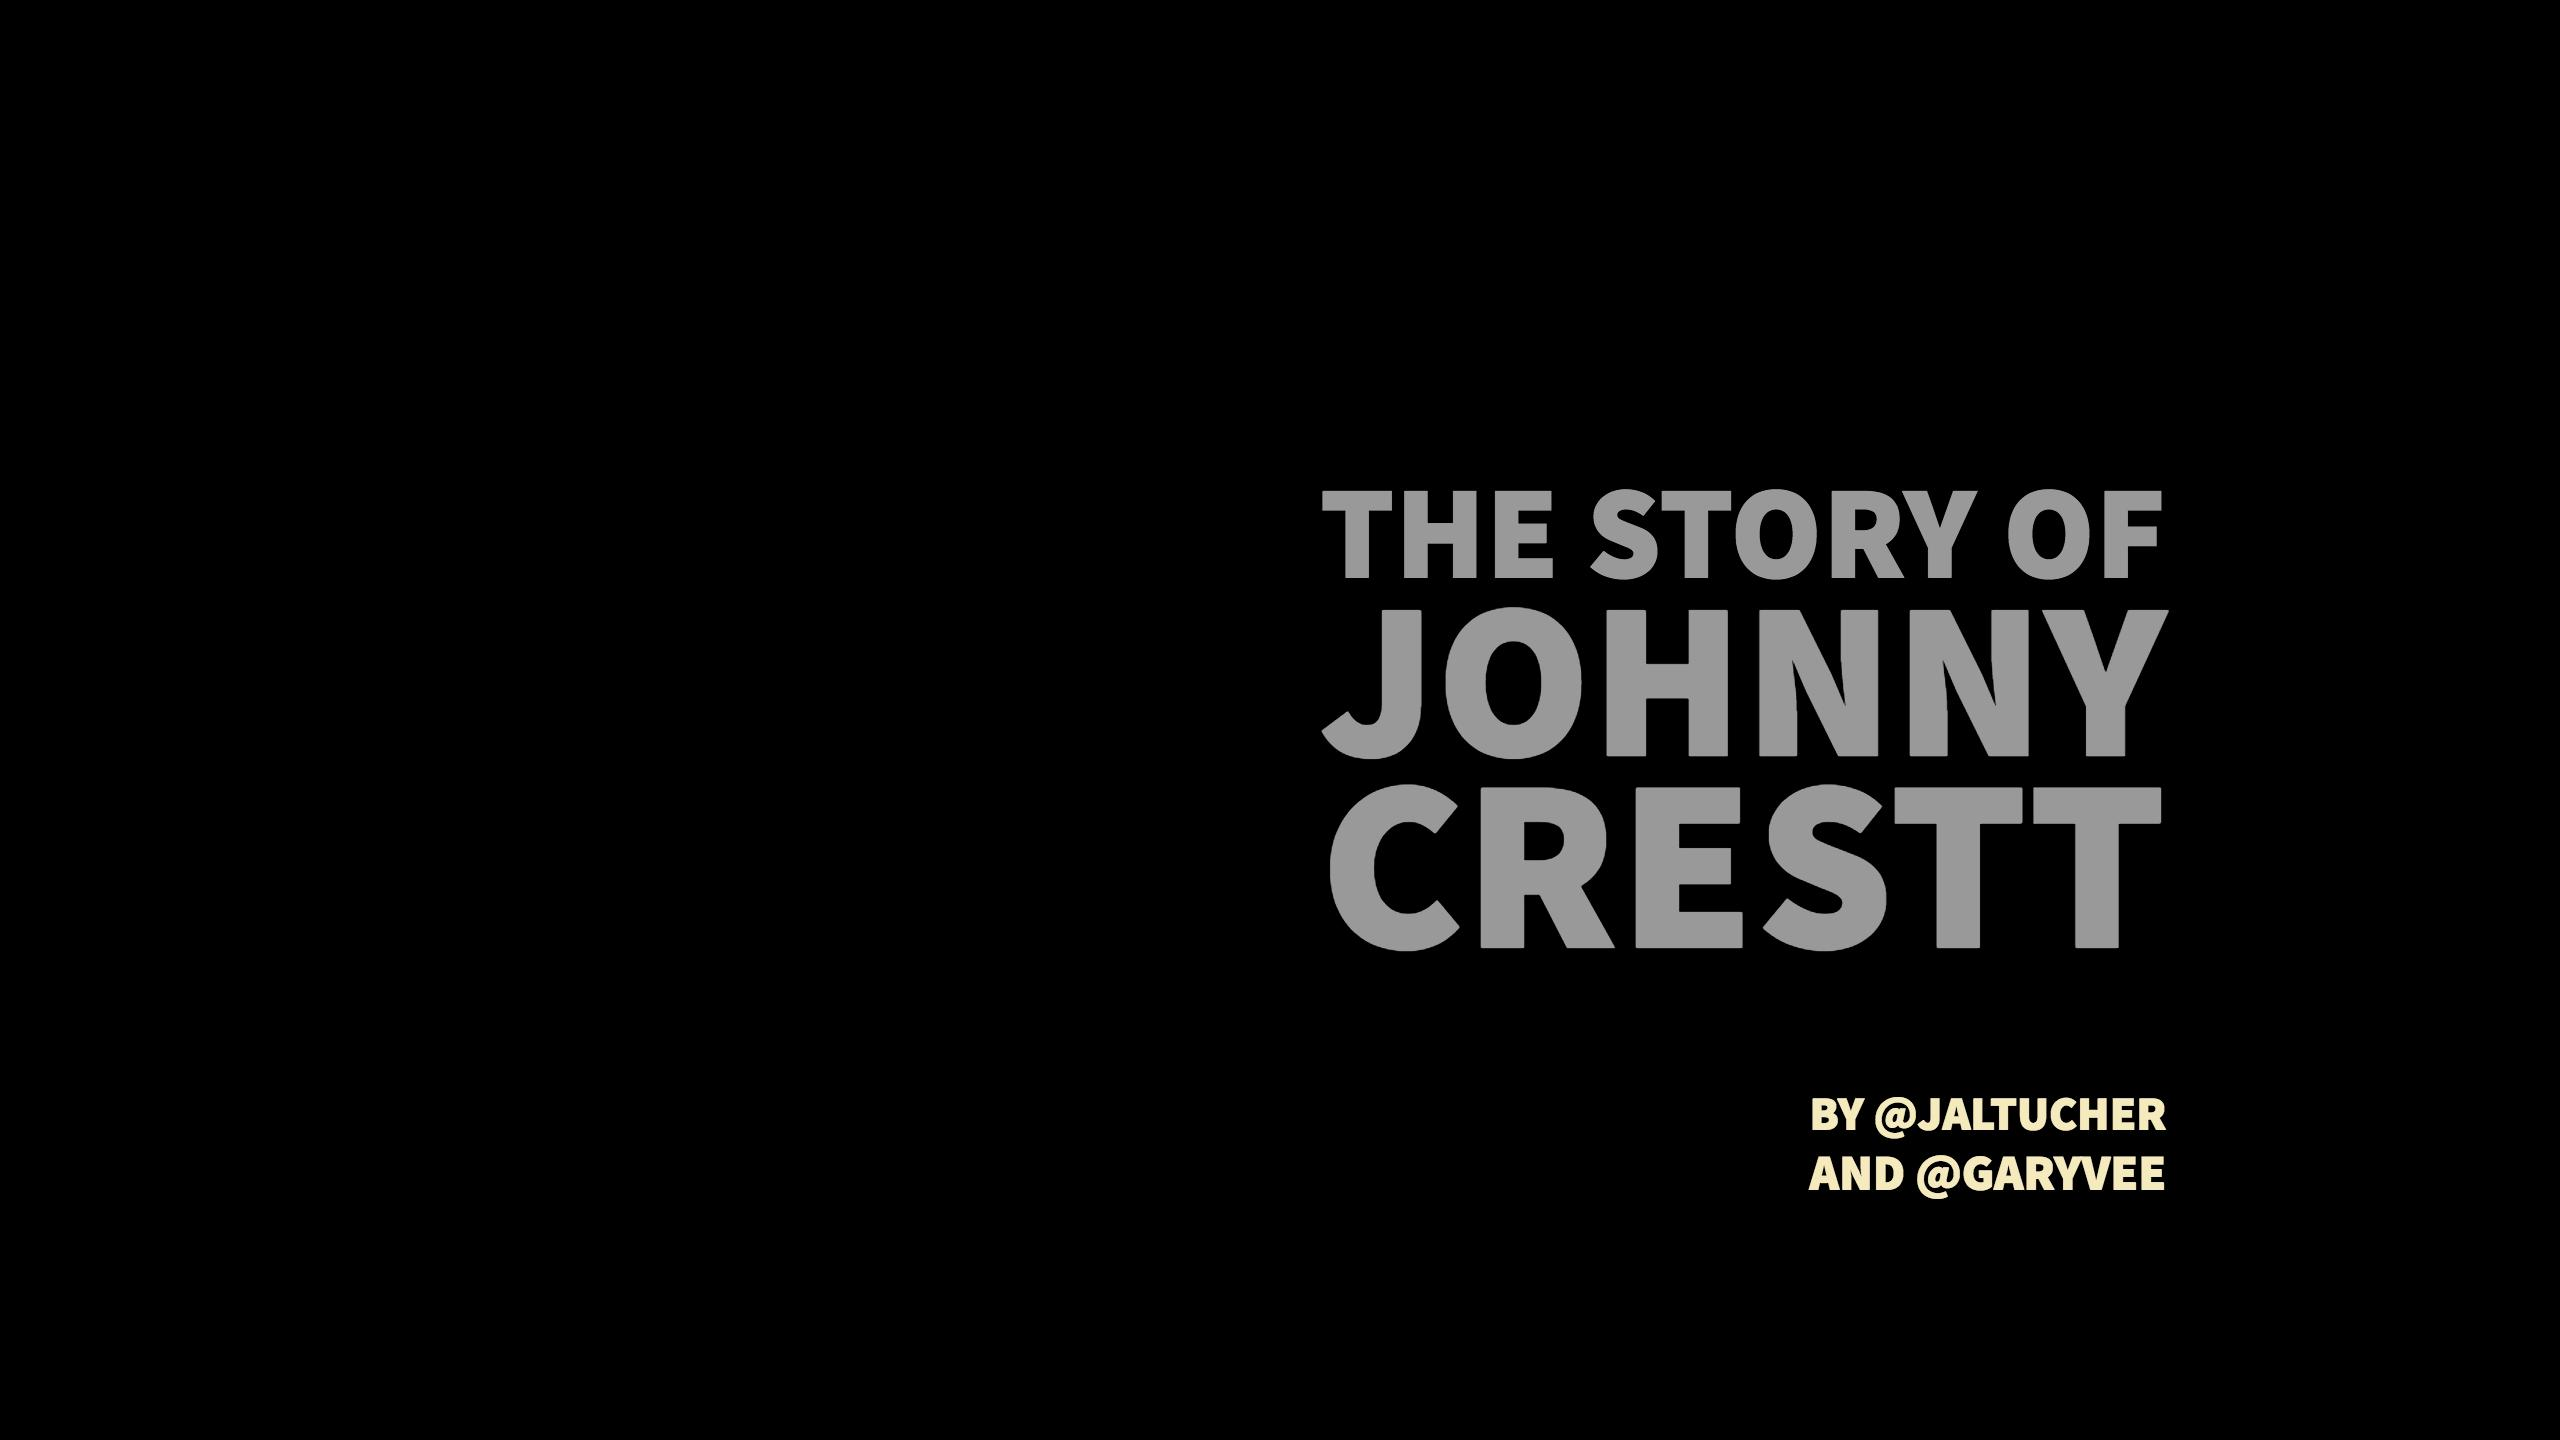 THE STORY OF JOHNNY CRESTT WITH GARYVEE & JAMES ALTUCHER